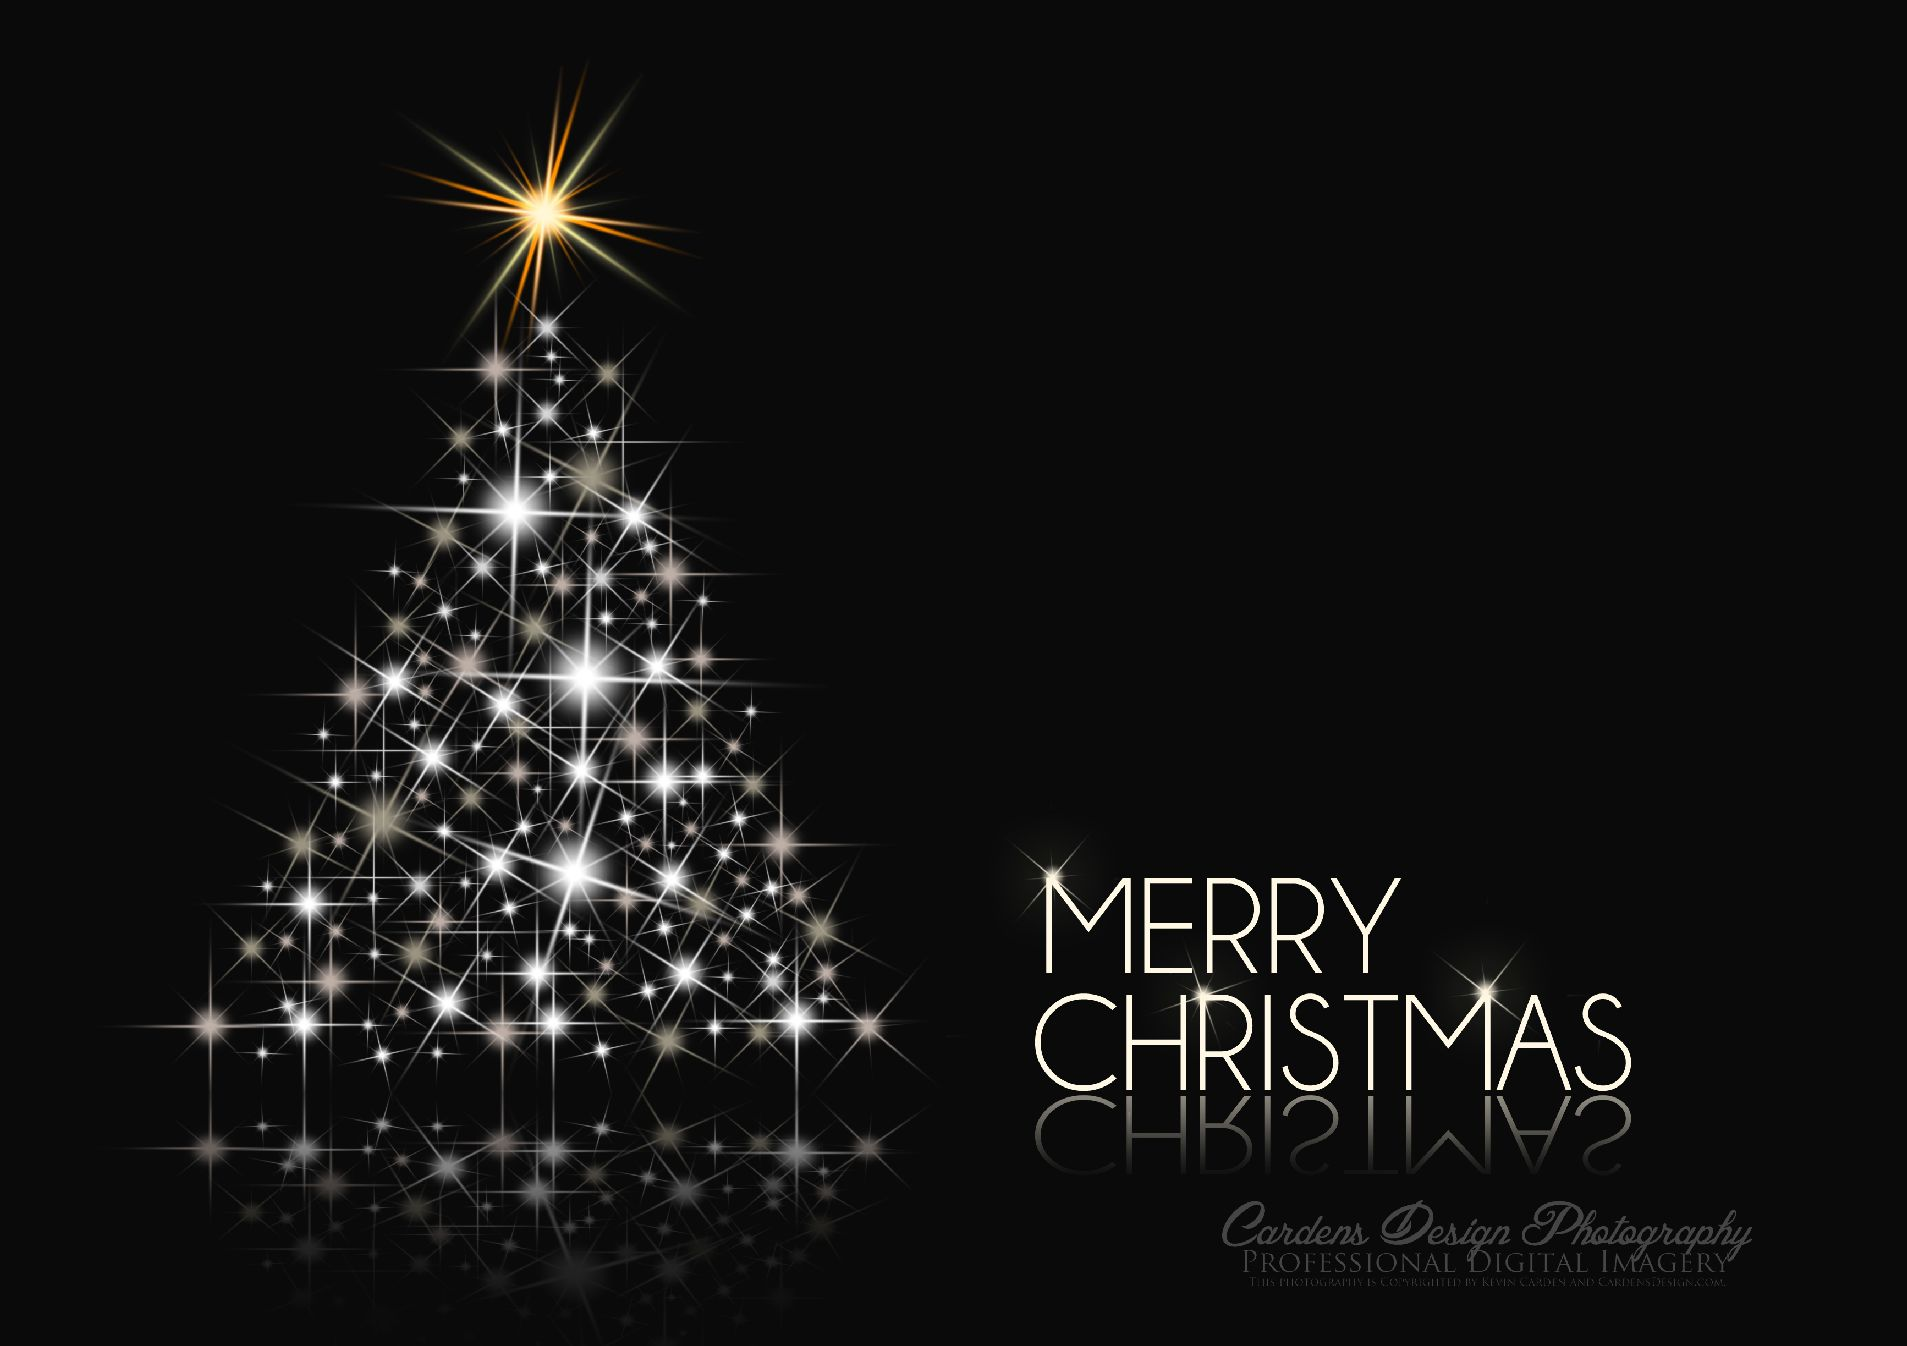 Merry christmas black and white christmas wallpaper black and white clipart